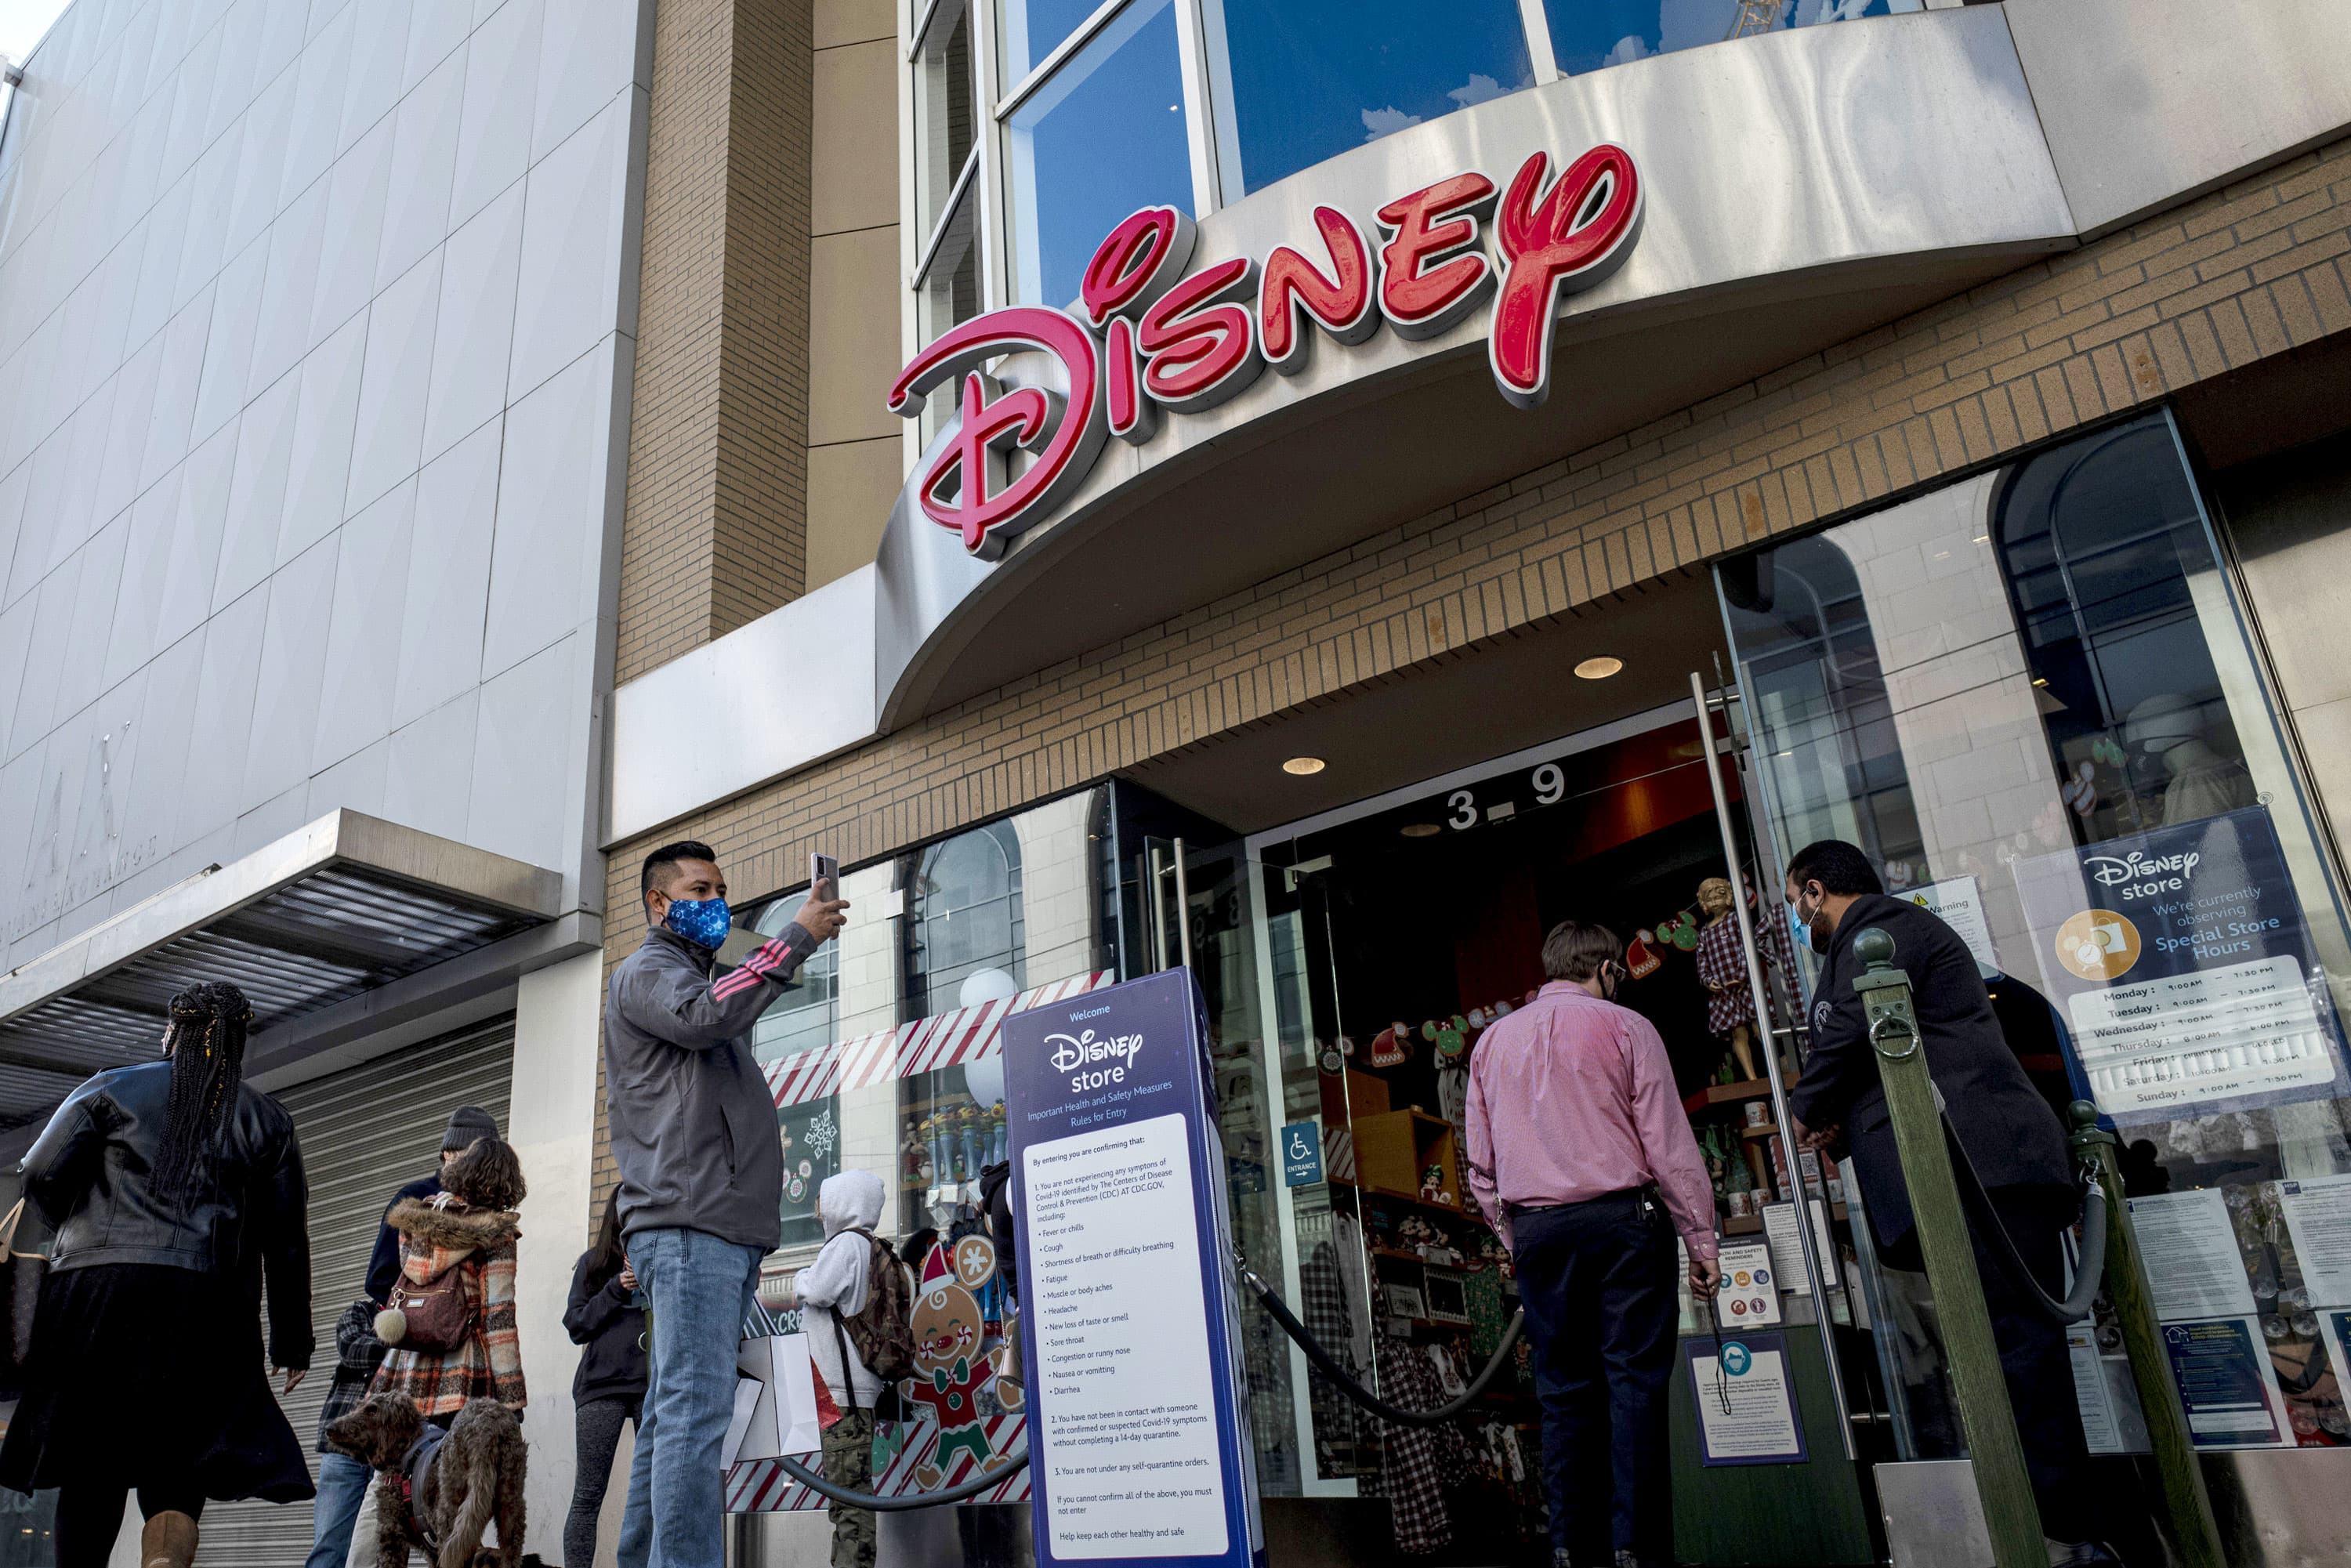 Disney shuttering at least 20% of Disney Stores as it shifts focus to e-commerce - CNBC